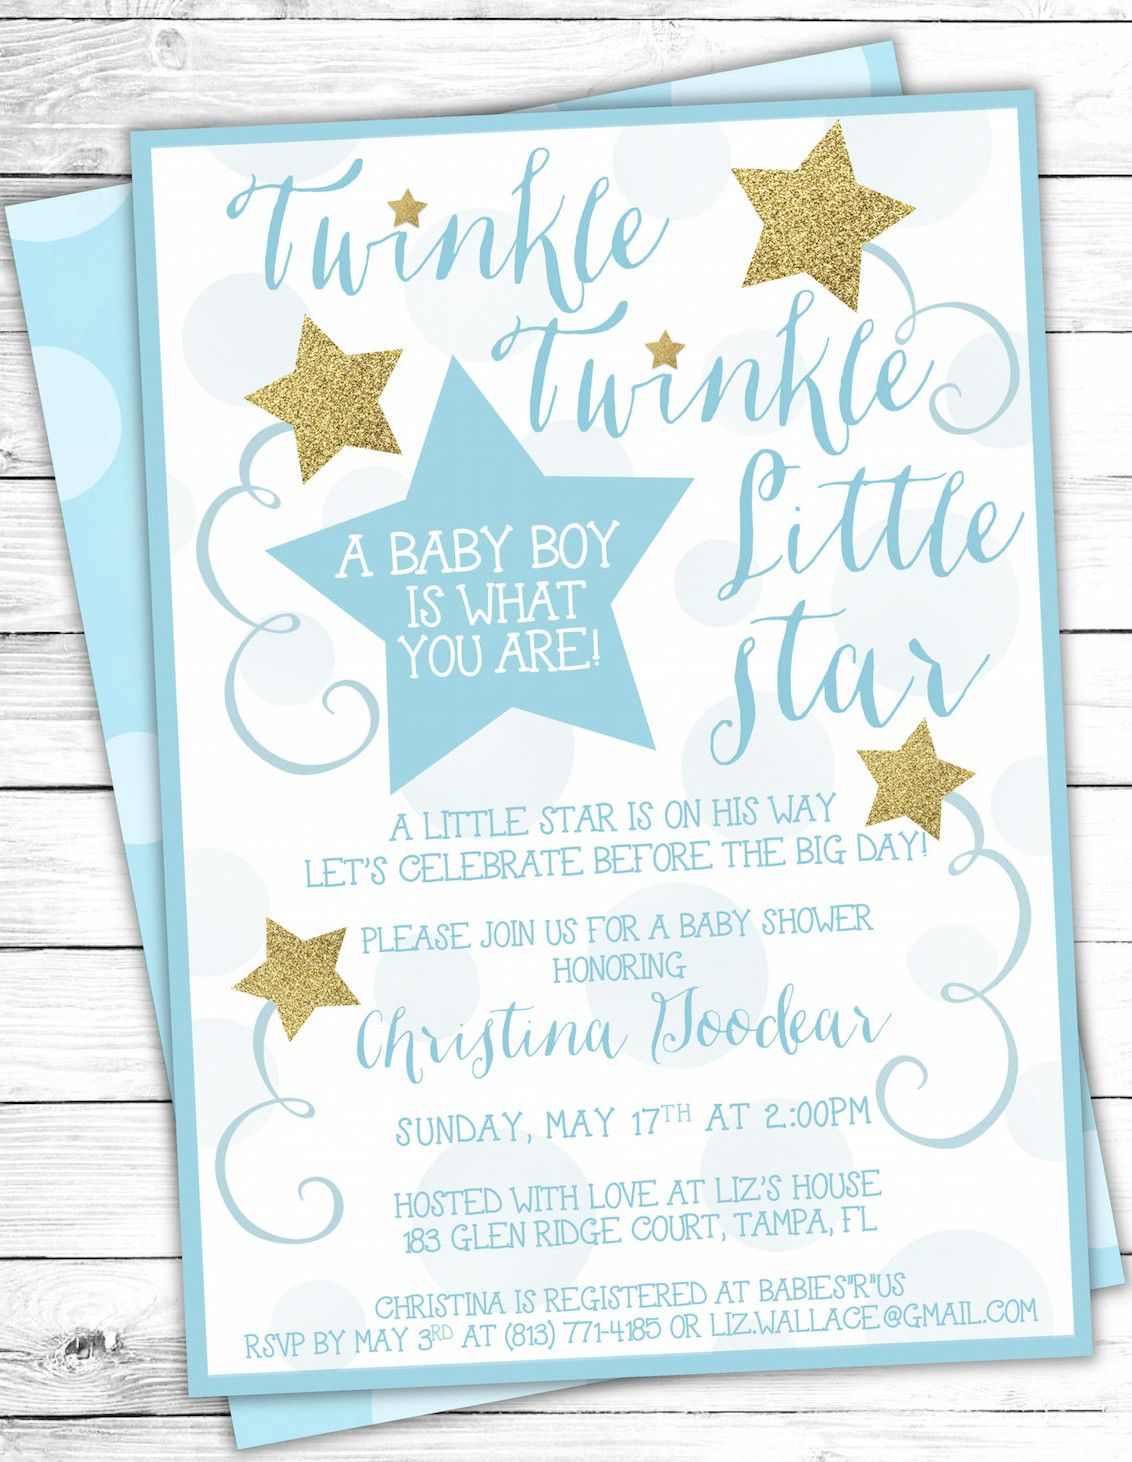 Twinkle Twinkle Little Star Party Theme Planning, Ideas & Supplies - Free Printable Twinkle Twinkle Little Star Baby Shower Invitations